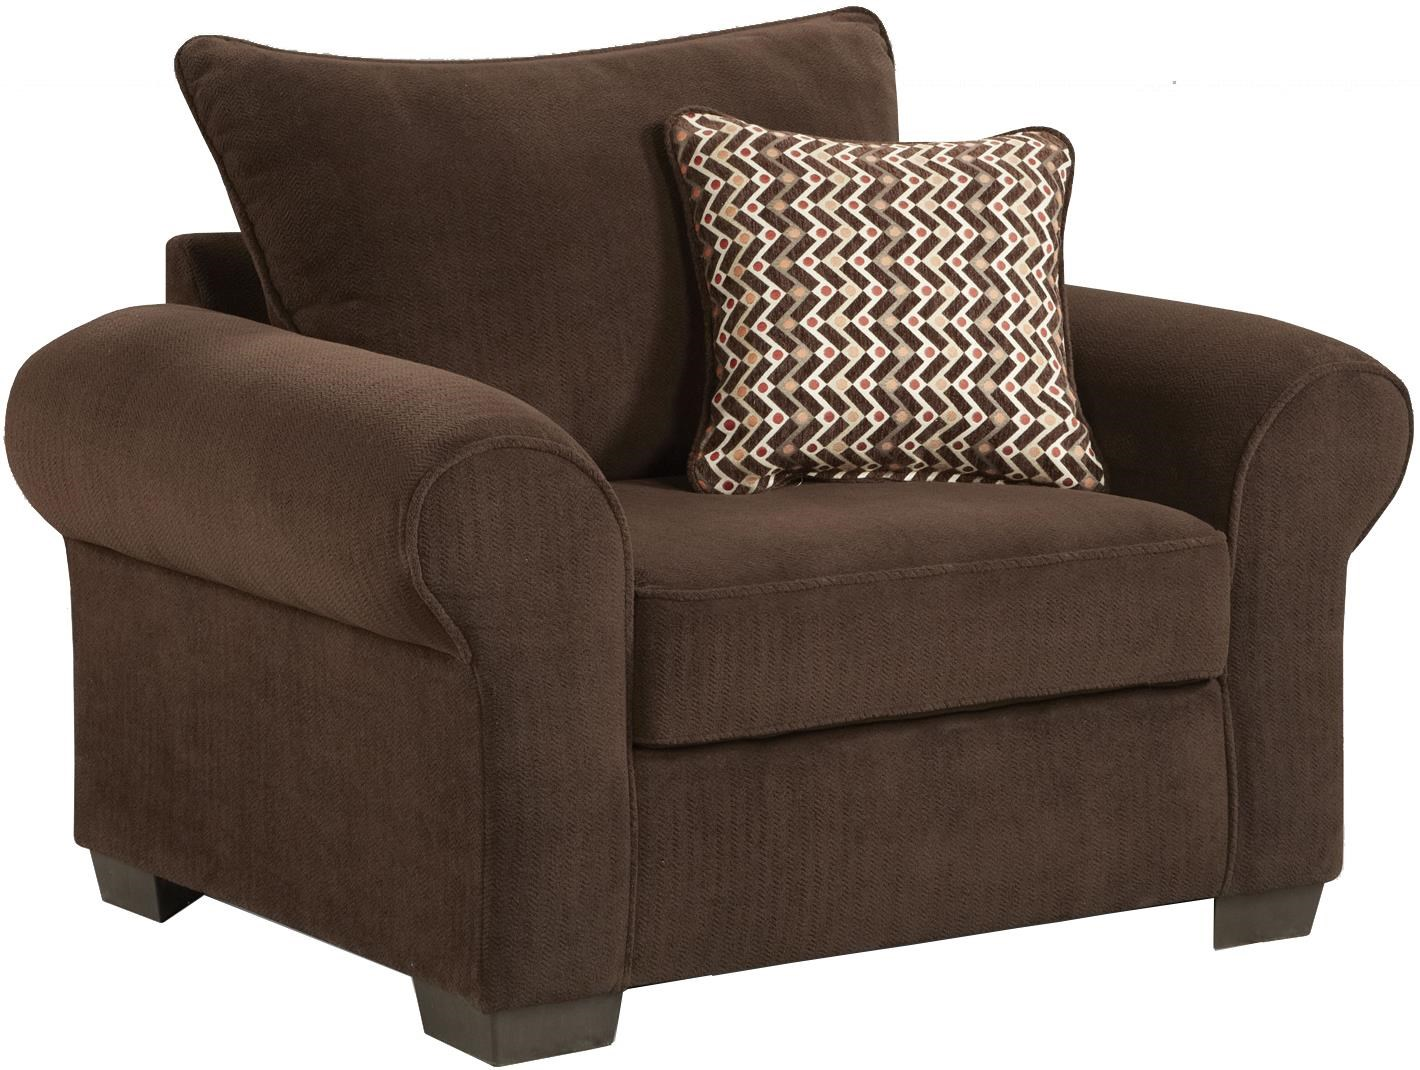 Affordable Furniture 7300 Casual Chair and a Half with ...